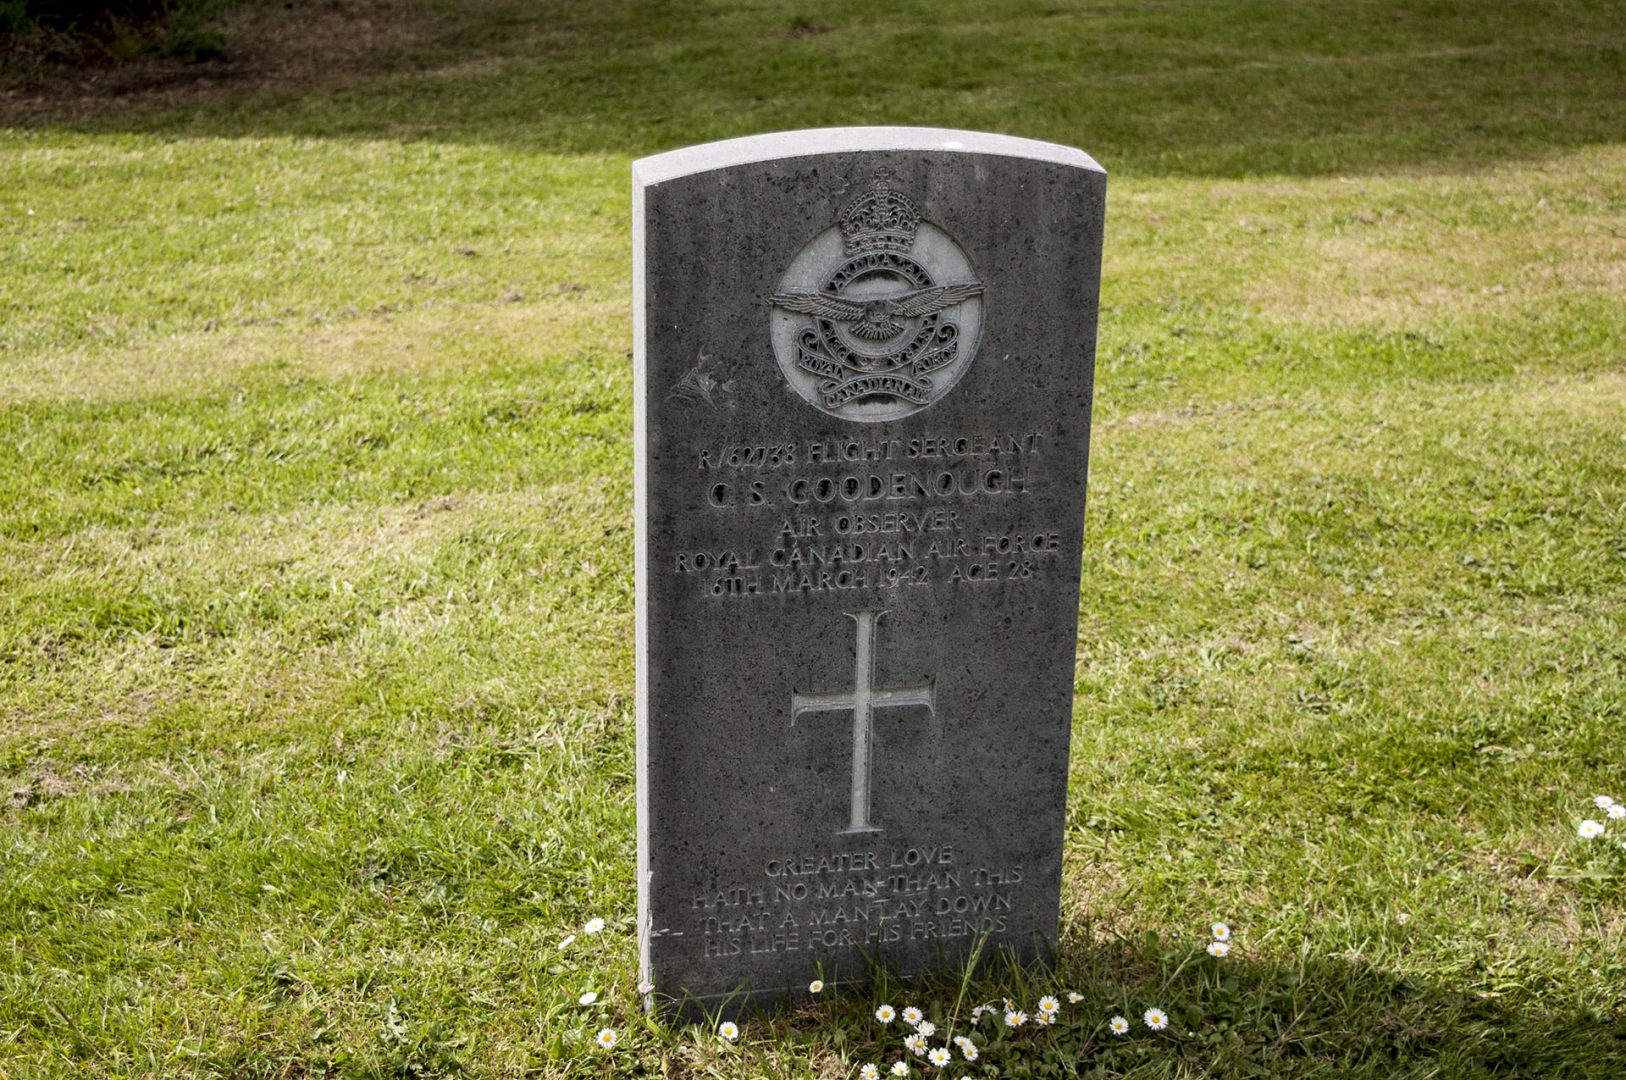 Grave of Flight Sergeant Goodenough